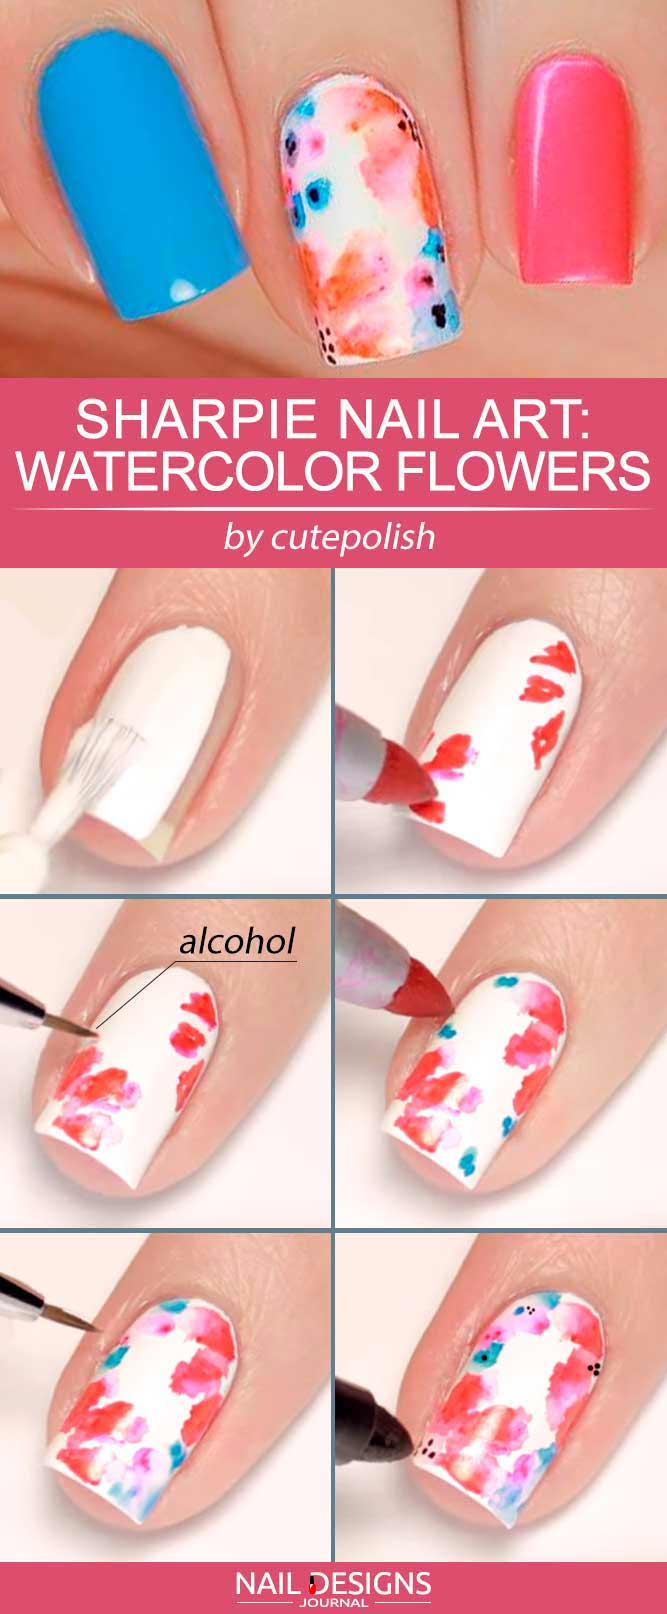 Sharpie Nail Art Ideas Zarte Aquarellblumen #watercopyrightnails #blumennägel #floralnails